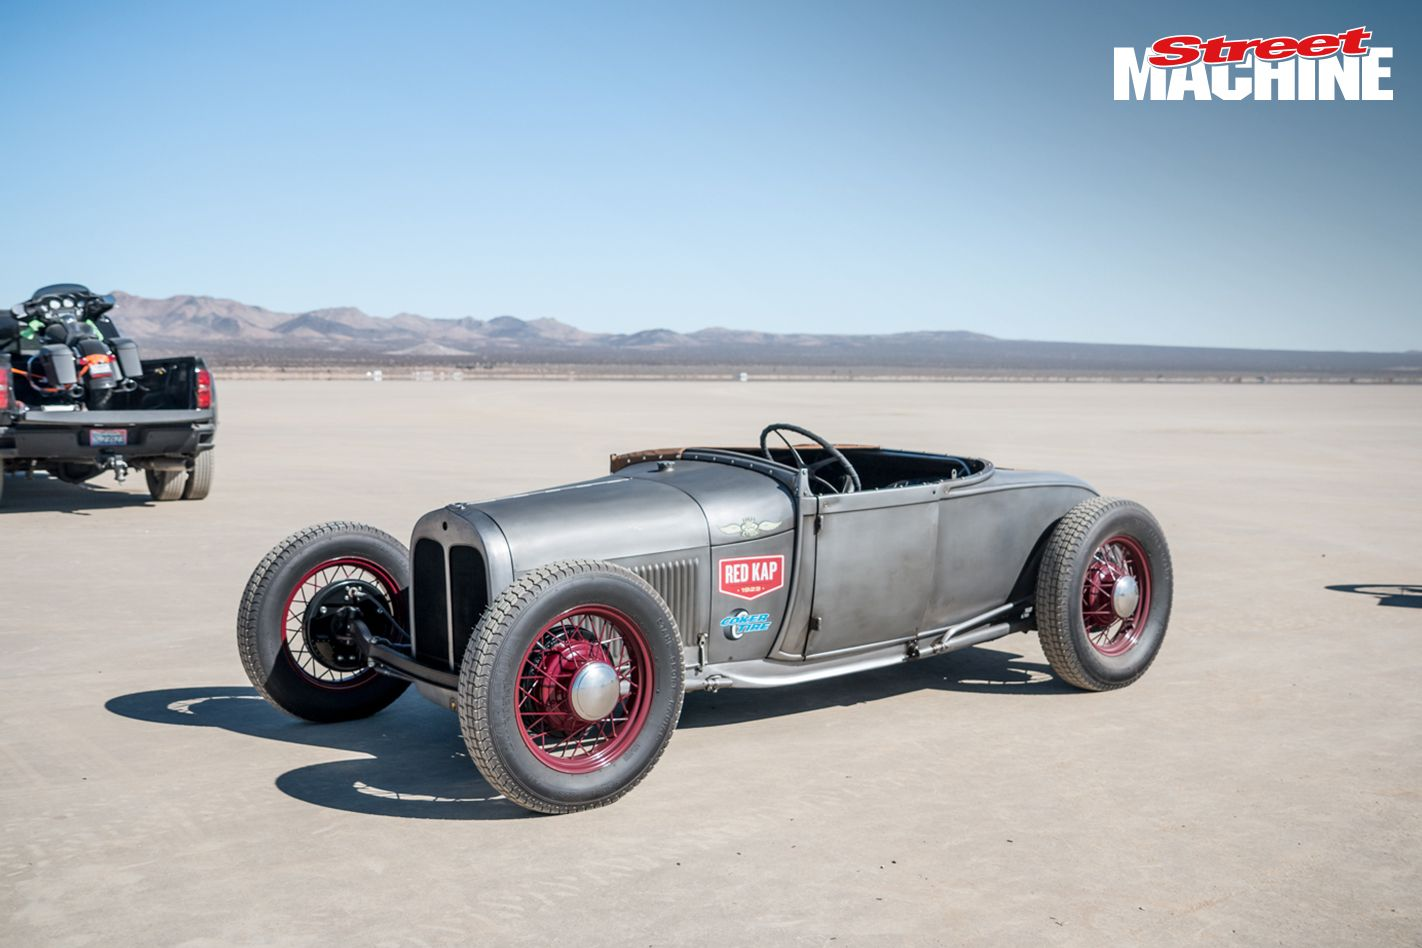 El-mirage-Land-Speed-Racing-3914.jpg (JPEG-bild, 1422 × 948 pixlar) - Skalad (84%)